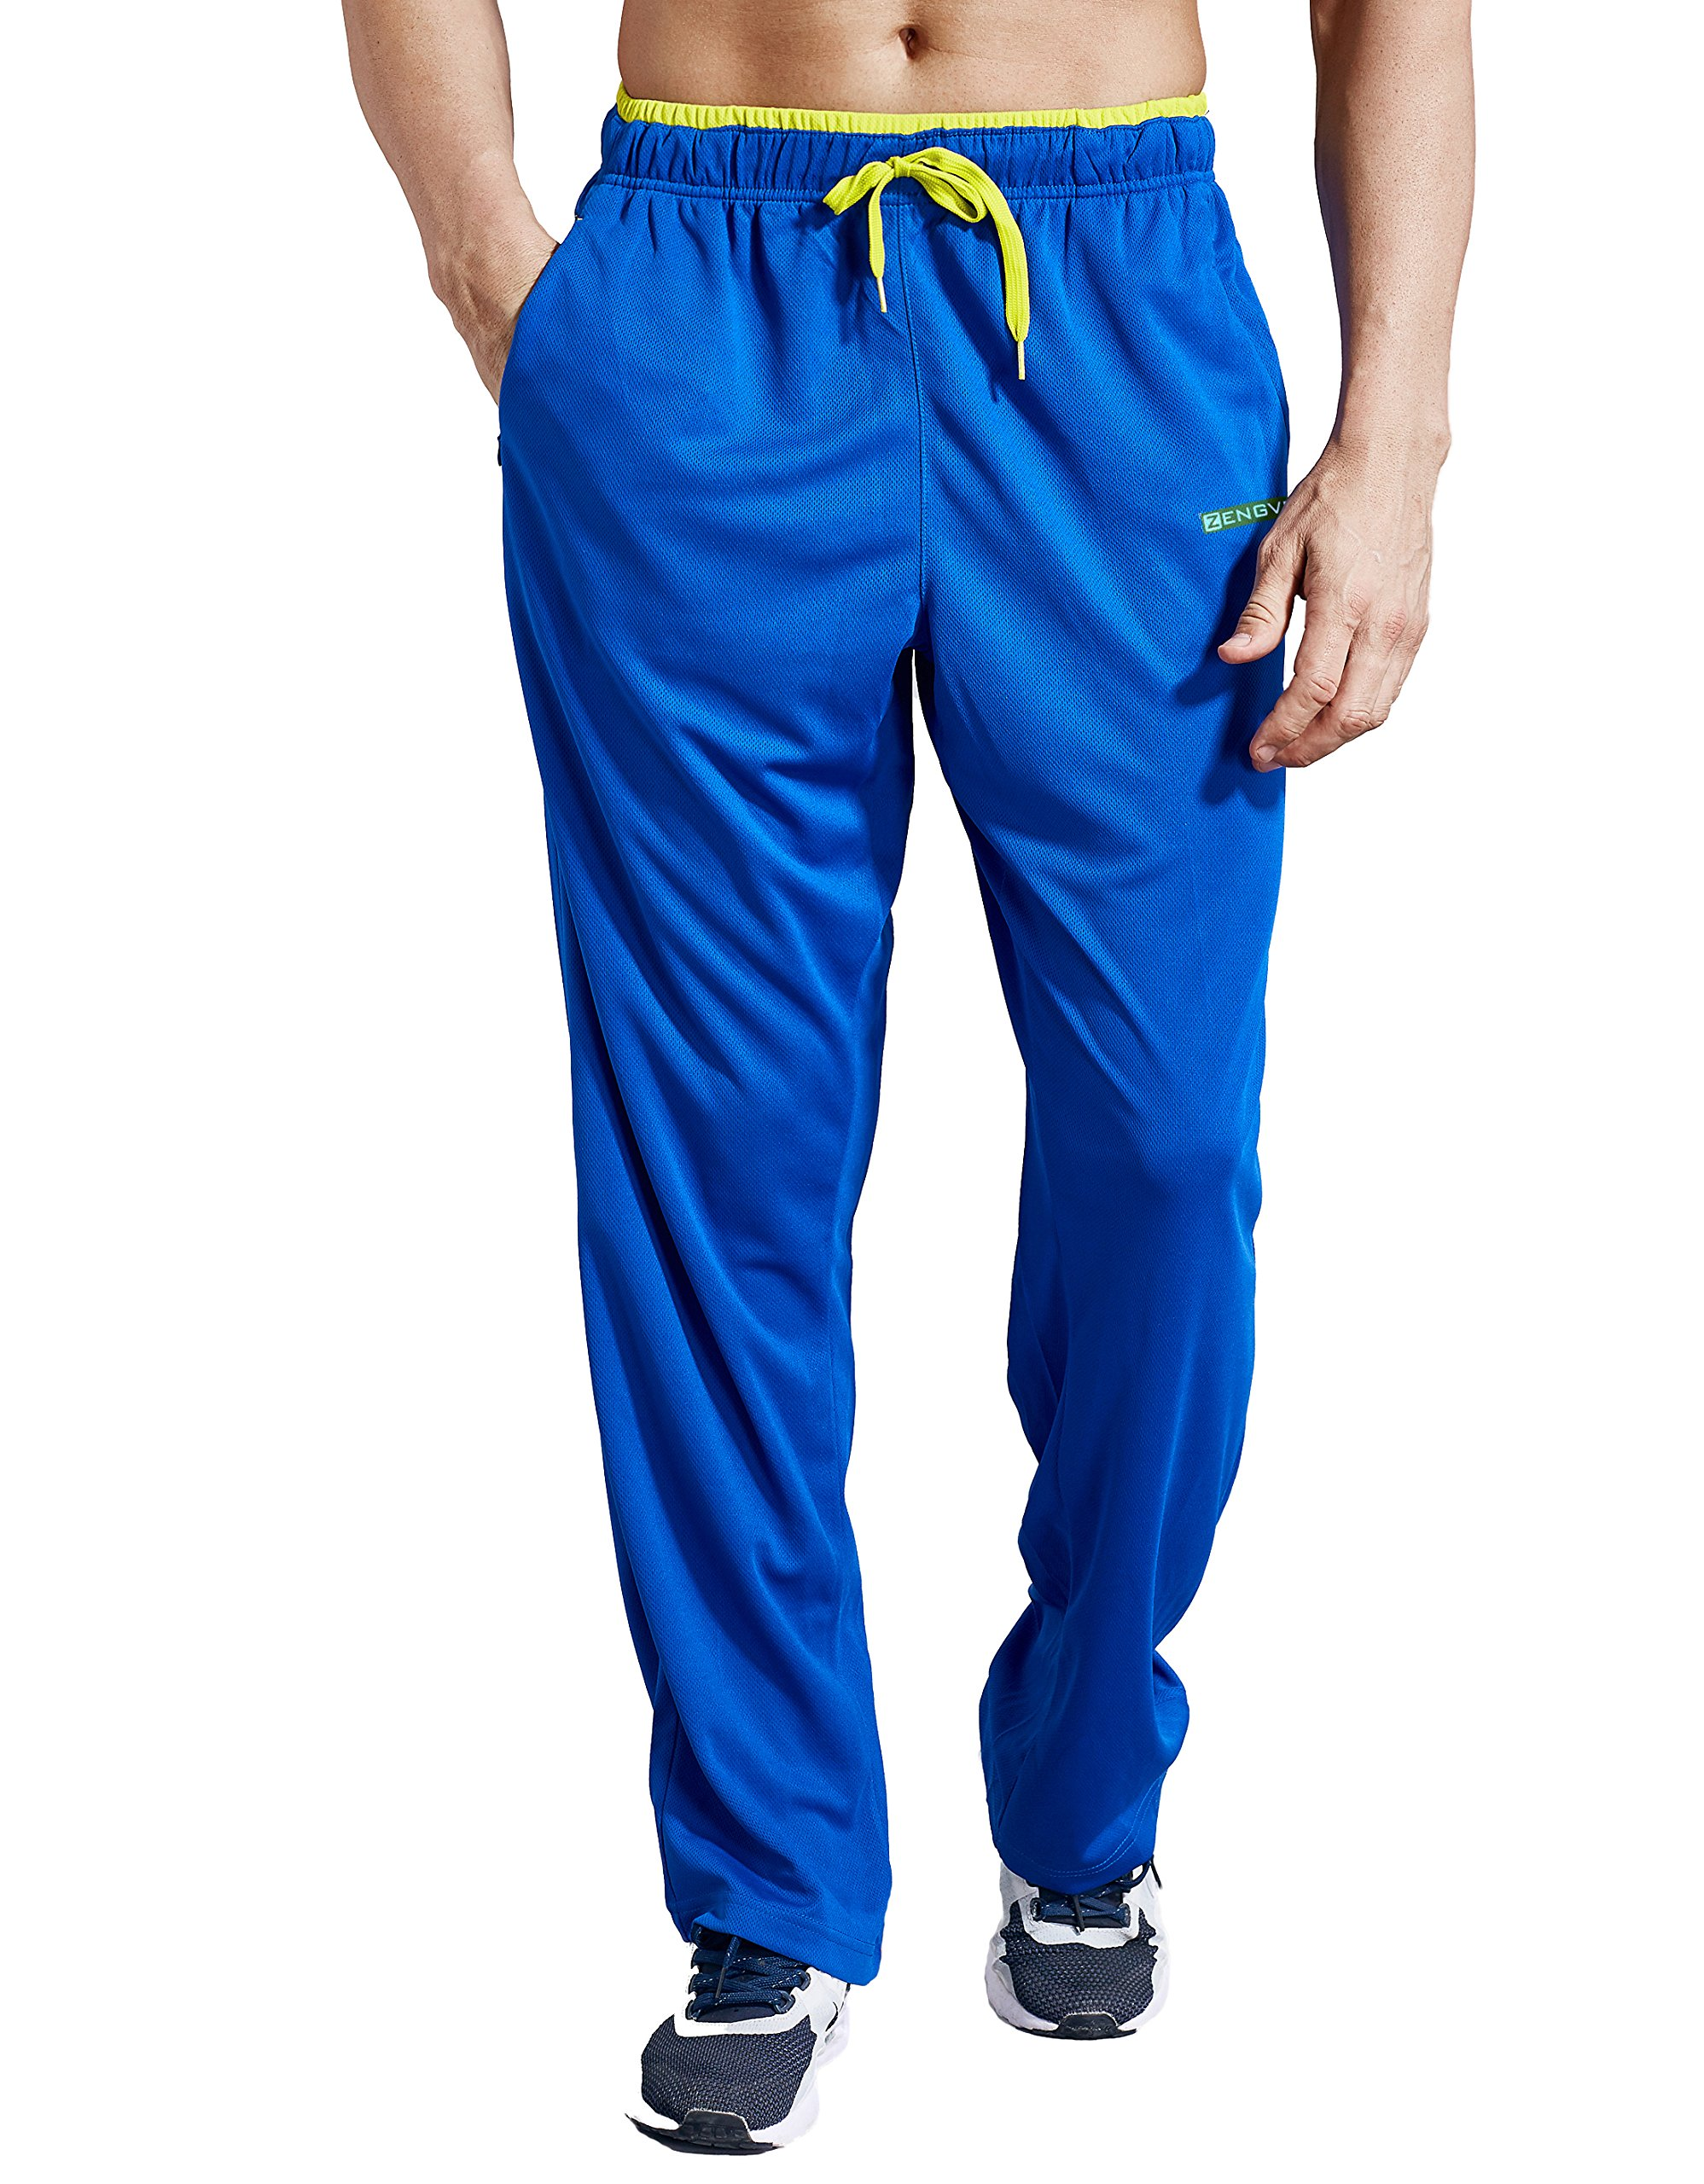 ZENGVEE Athletic Men's Open Bottom Light Weight Jersey Sweatpant with Zipper Pockets for Workout, Gym, Running, Training (Blue01,S)